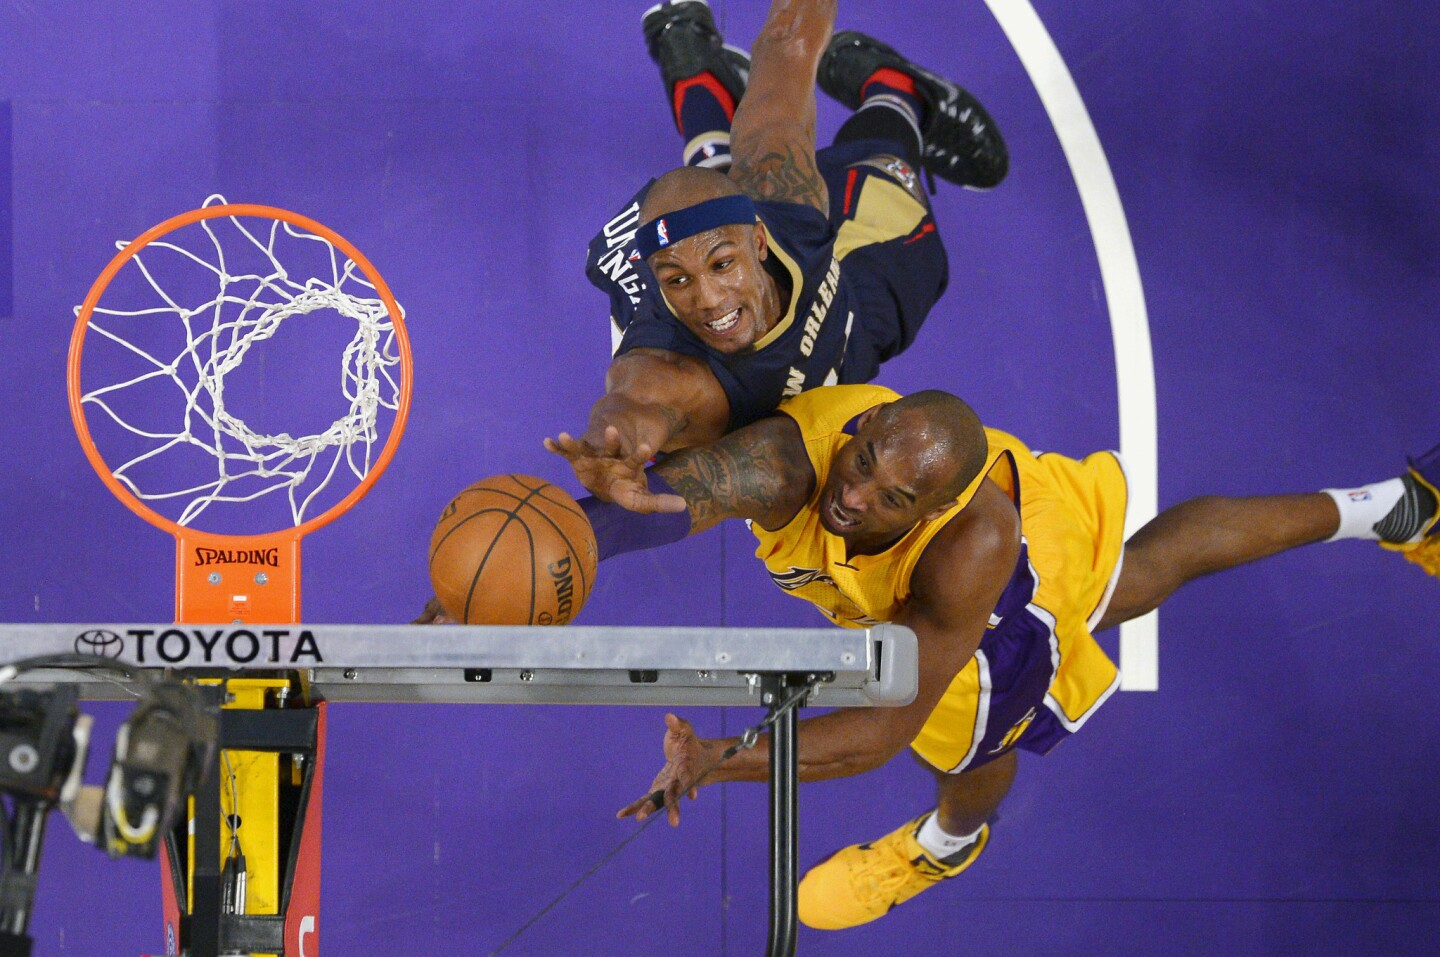 Lakers forward Kobe Bryant, right, shoots as Pelicans forward Dante Cunningham defends during the first half.